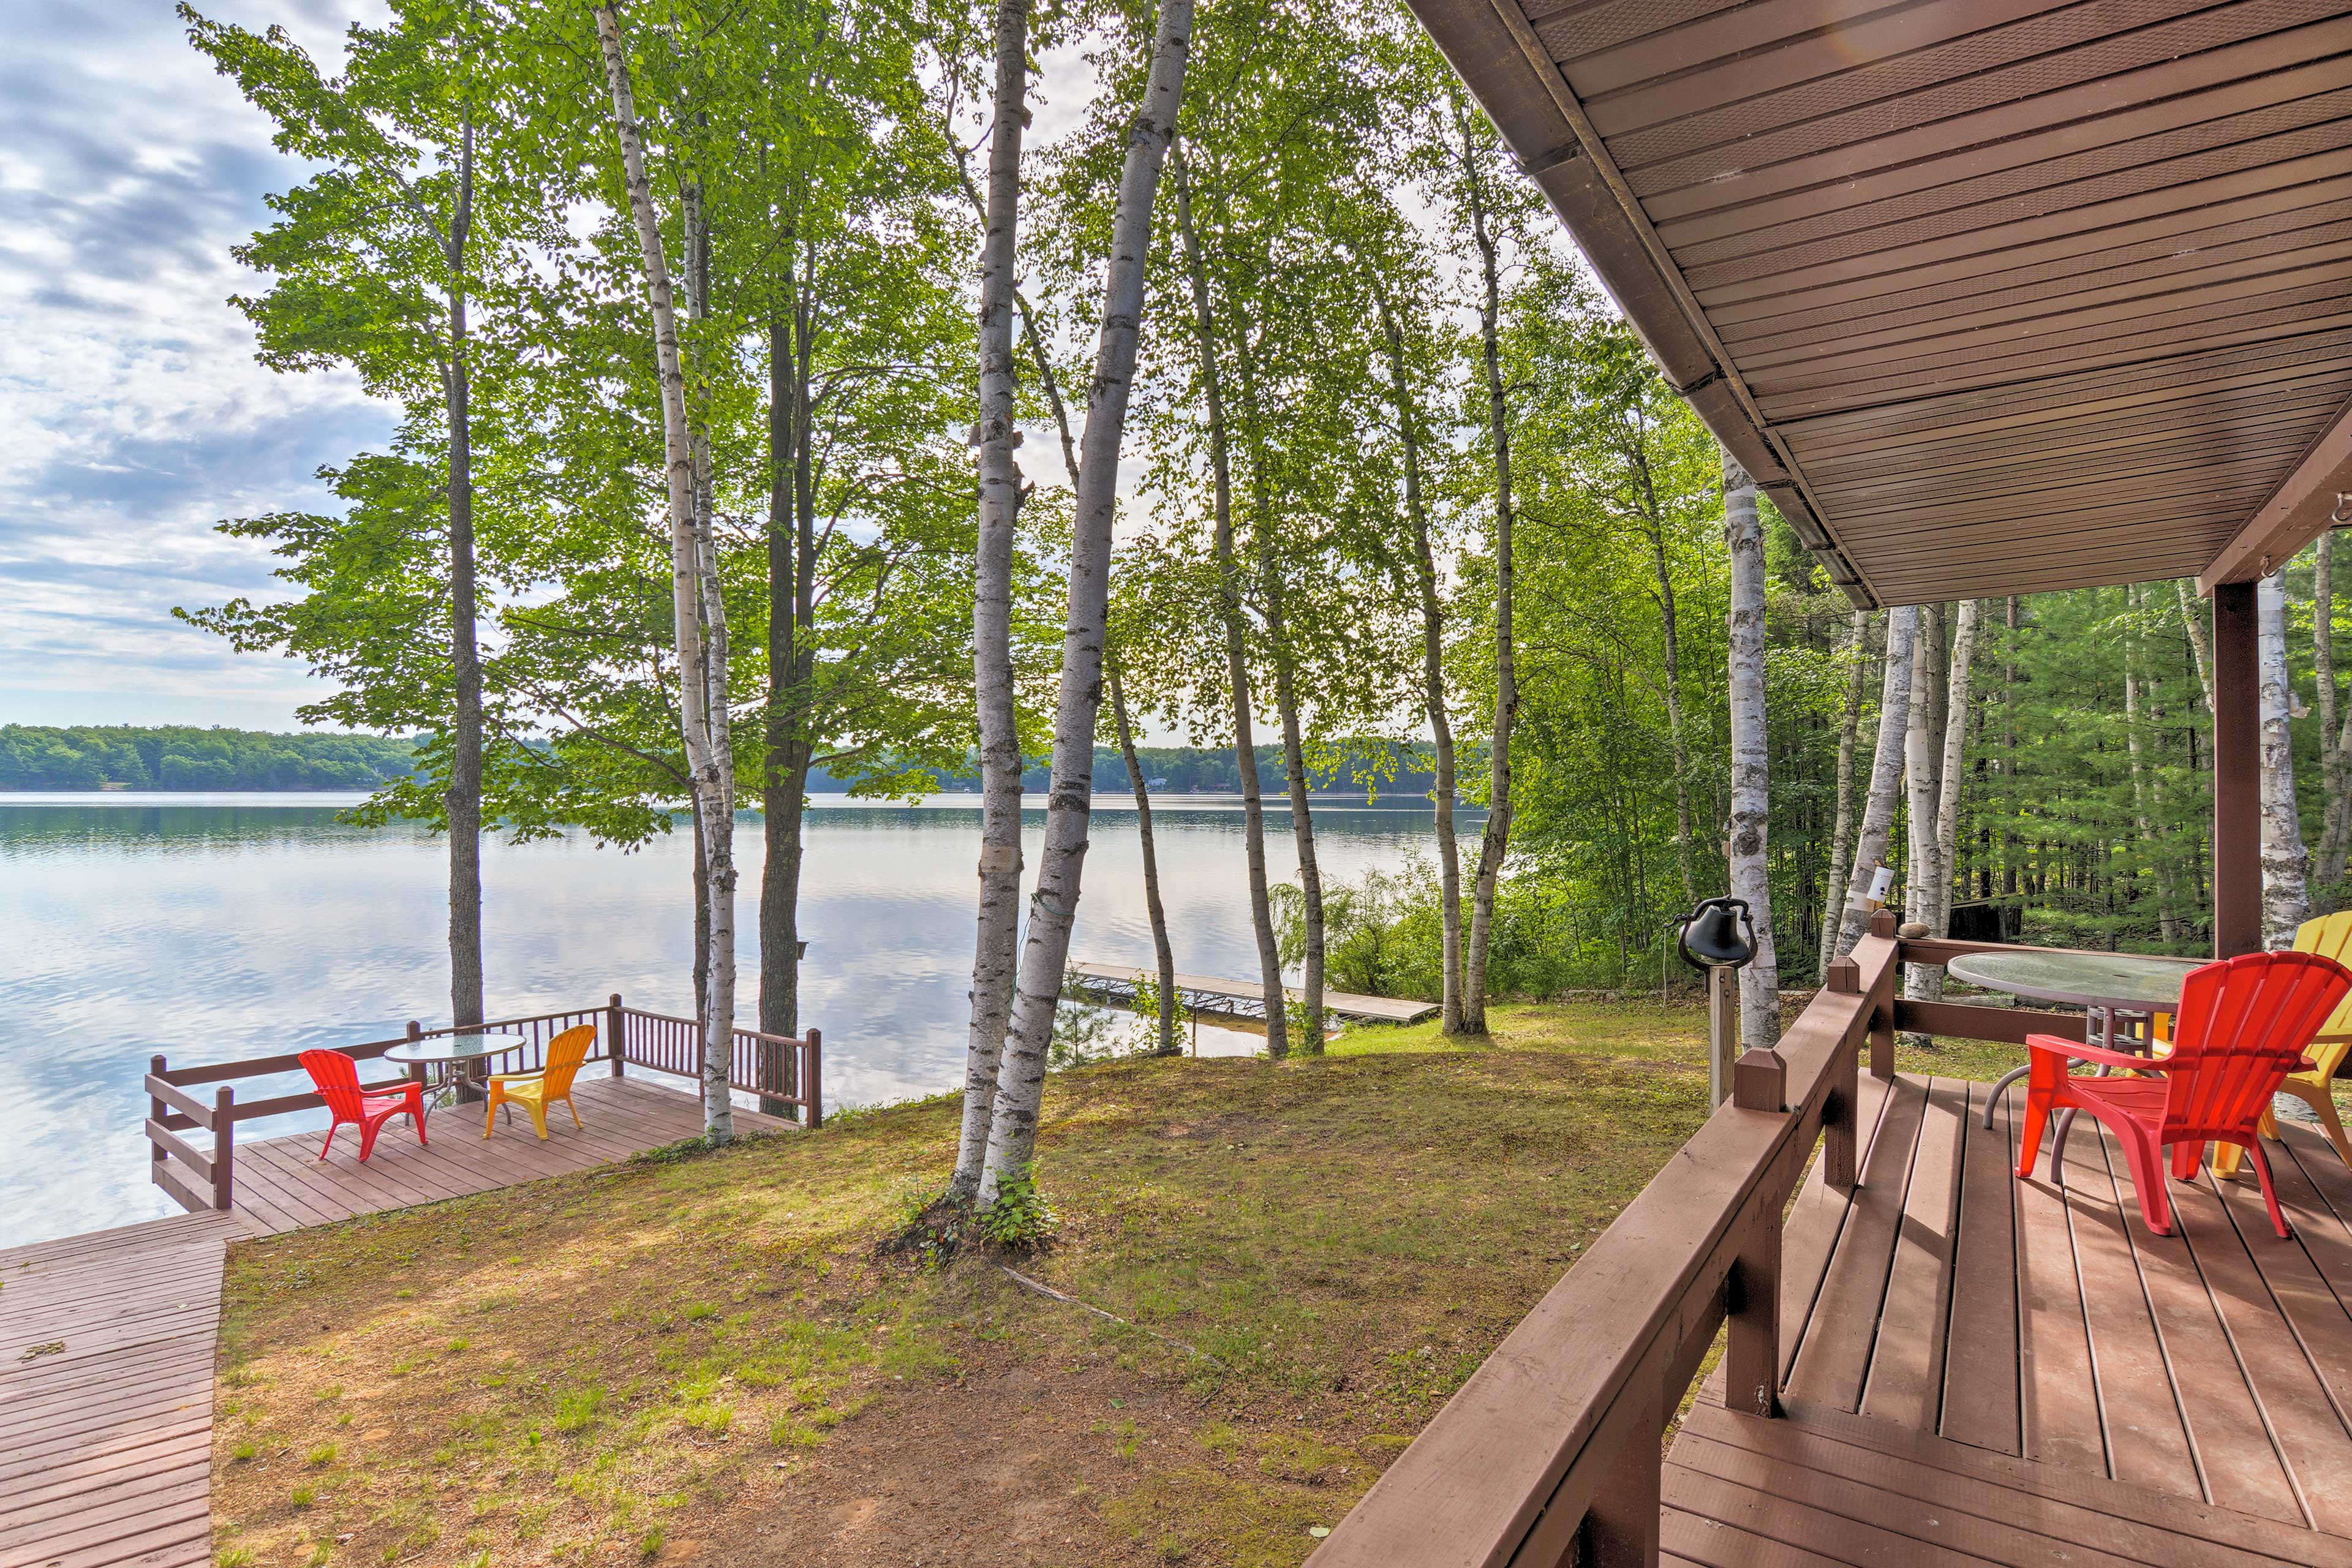 Escape to the shore at Gooseneck Lake at this Manistique vacation rental cabin.